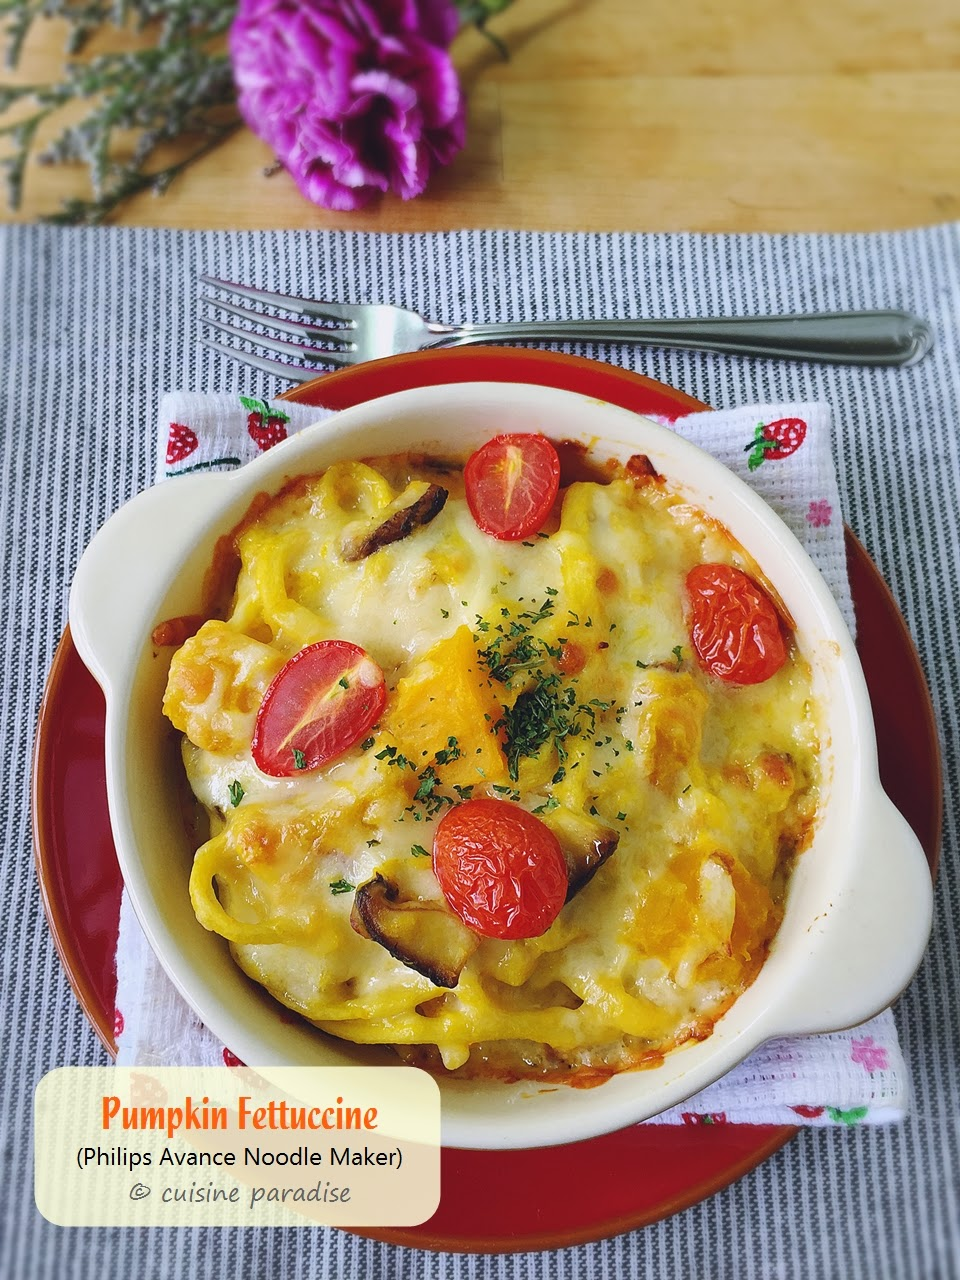 Cuisine paradise singapore food blog recipes reviews and travel baked pumpkin fettuccine forumfinder Choice Image